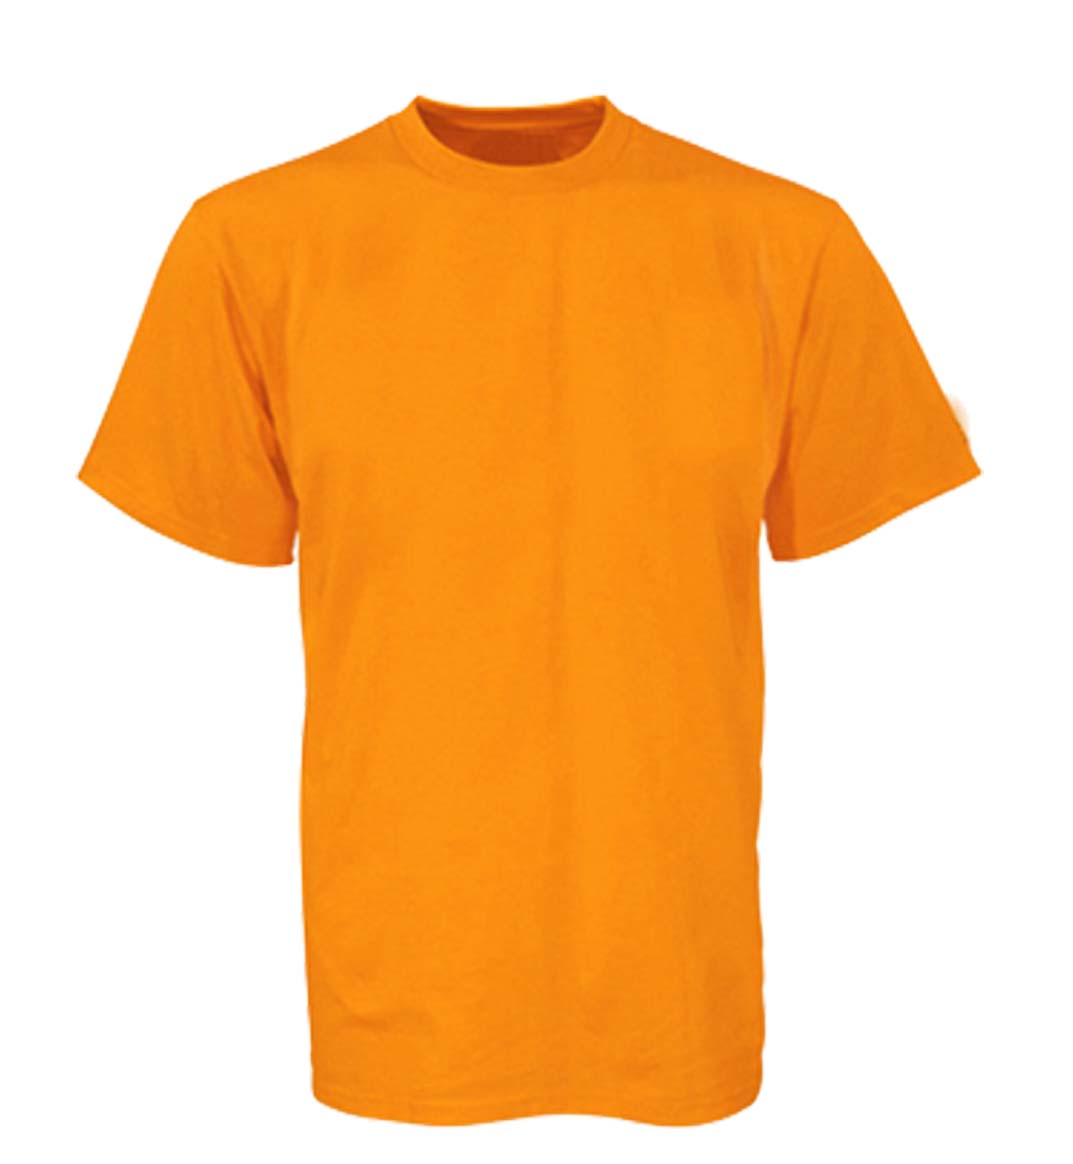 Plain Blank T Shirts Yellow | Free Images at Clker.com ...